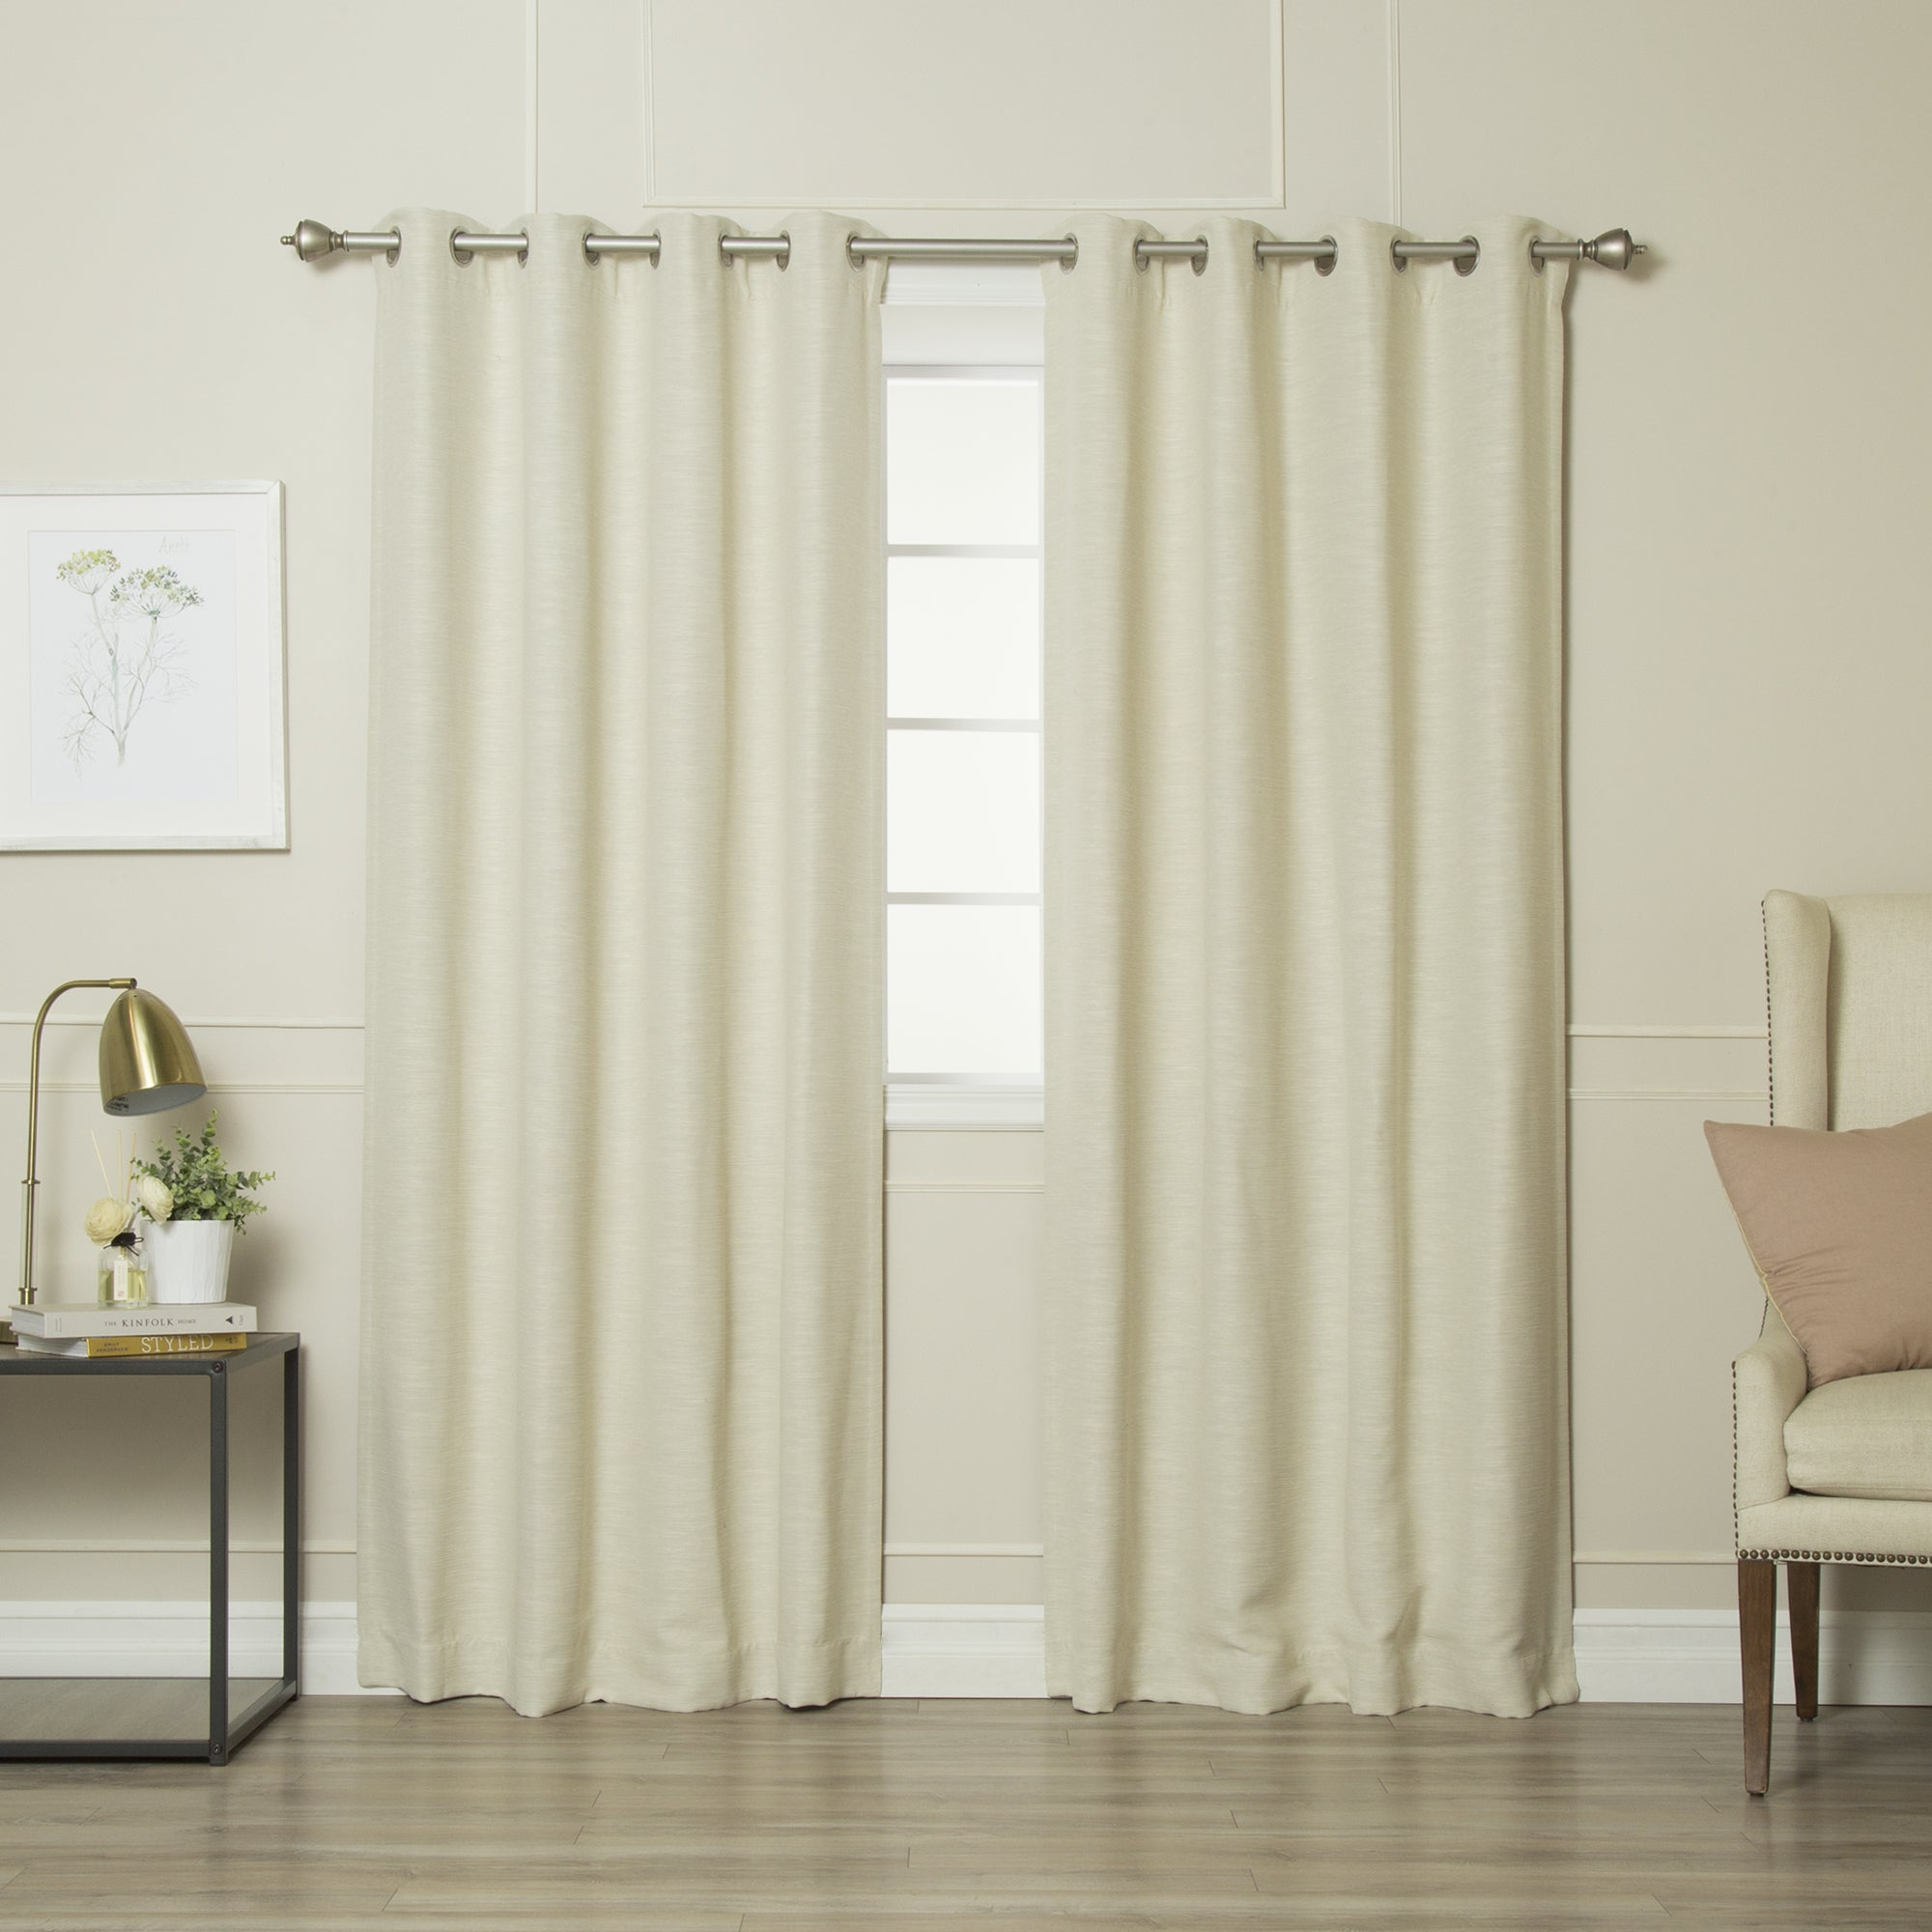 dreaded white photo ideas curtain linen curtainslinen curtains blackout blend